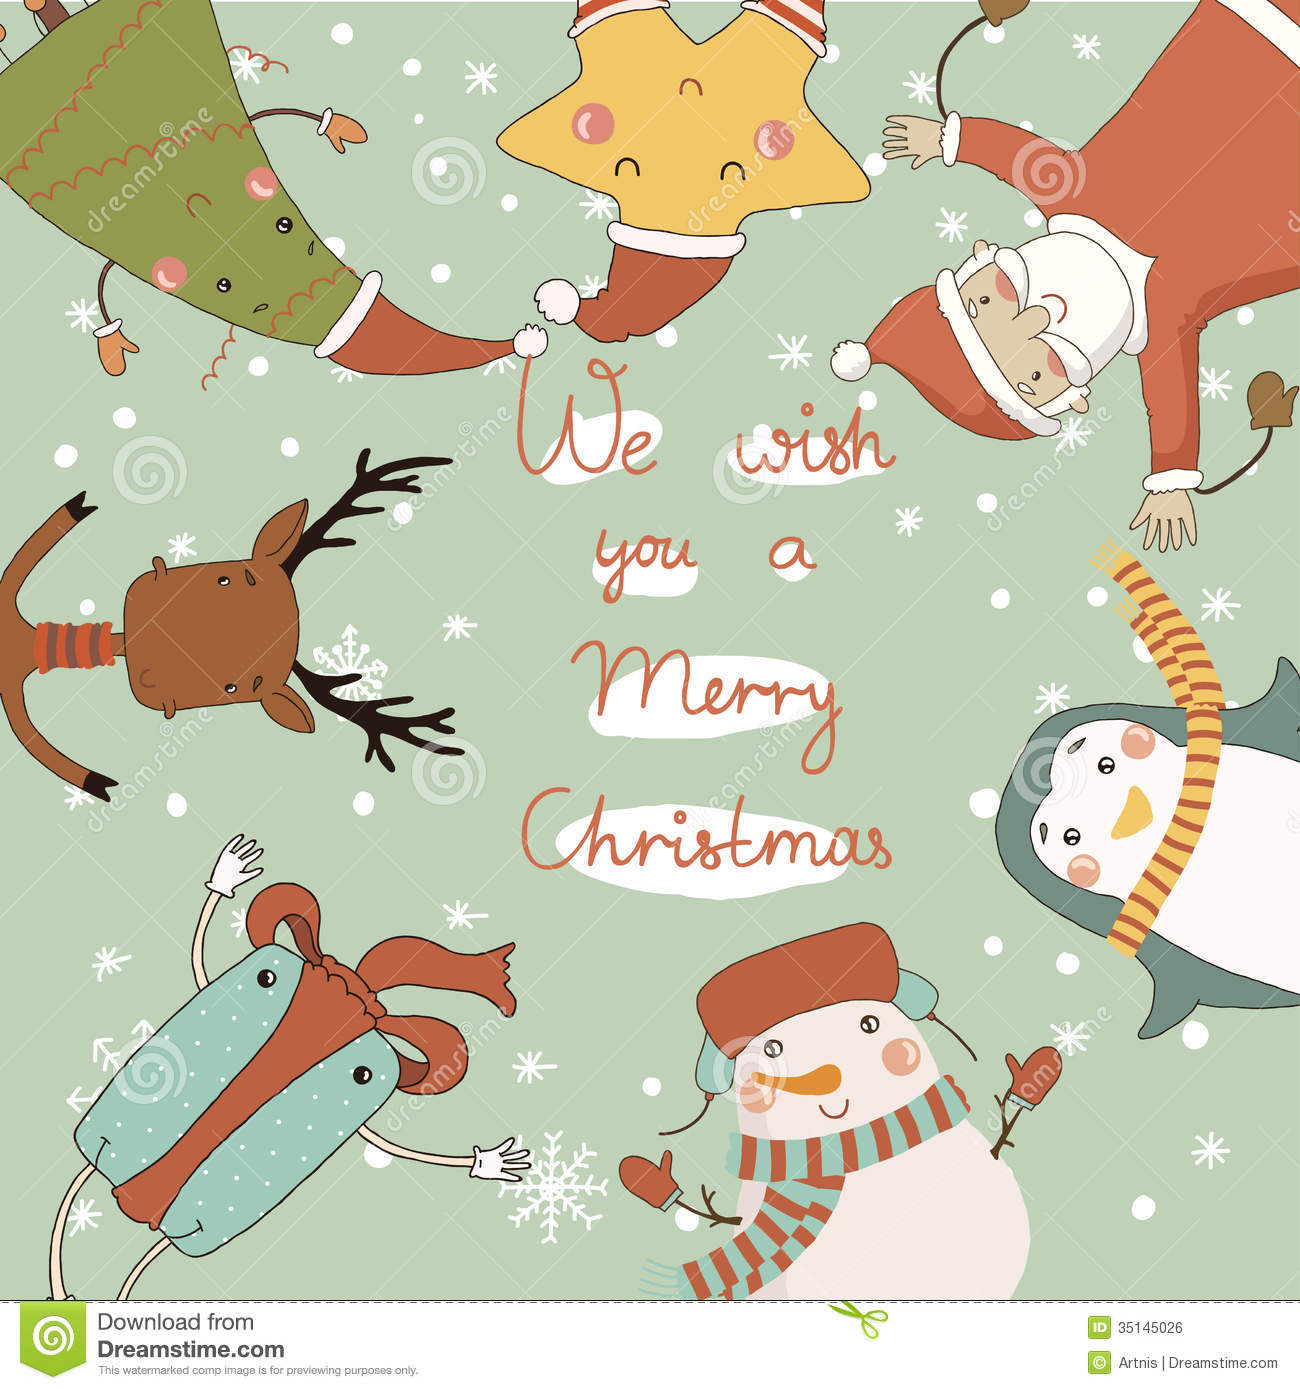 E Card Cartoon Characters : Christmas card with cartoon characters royalty free stock